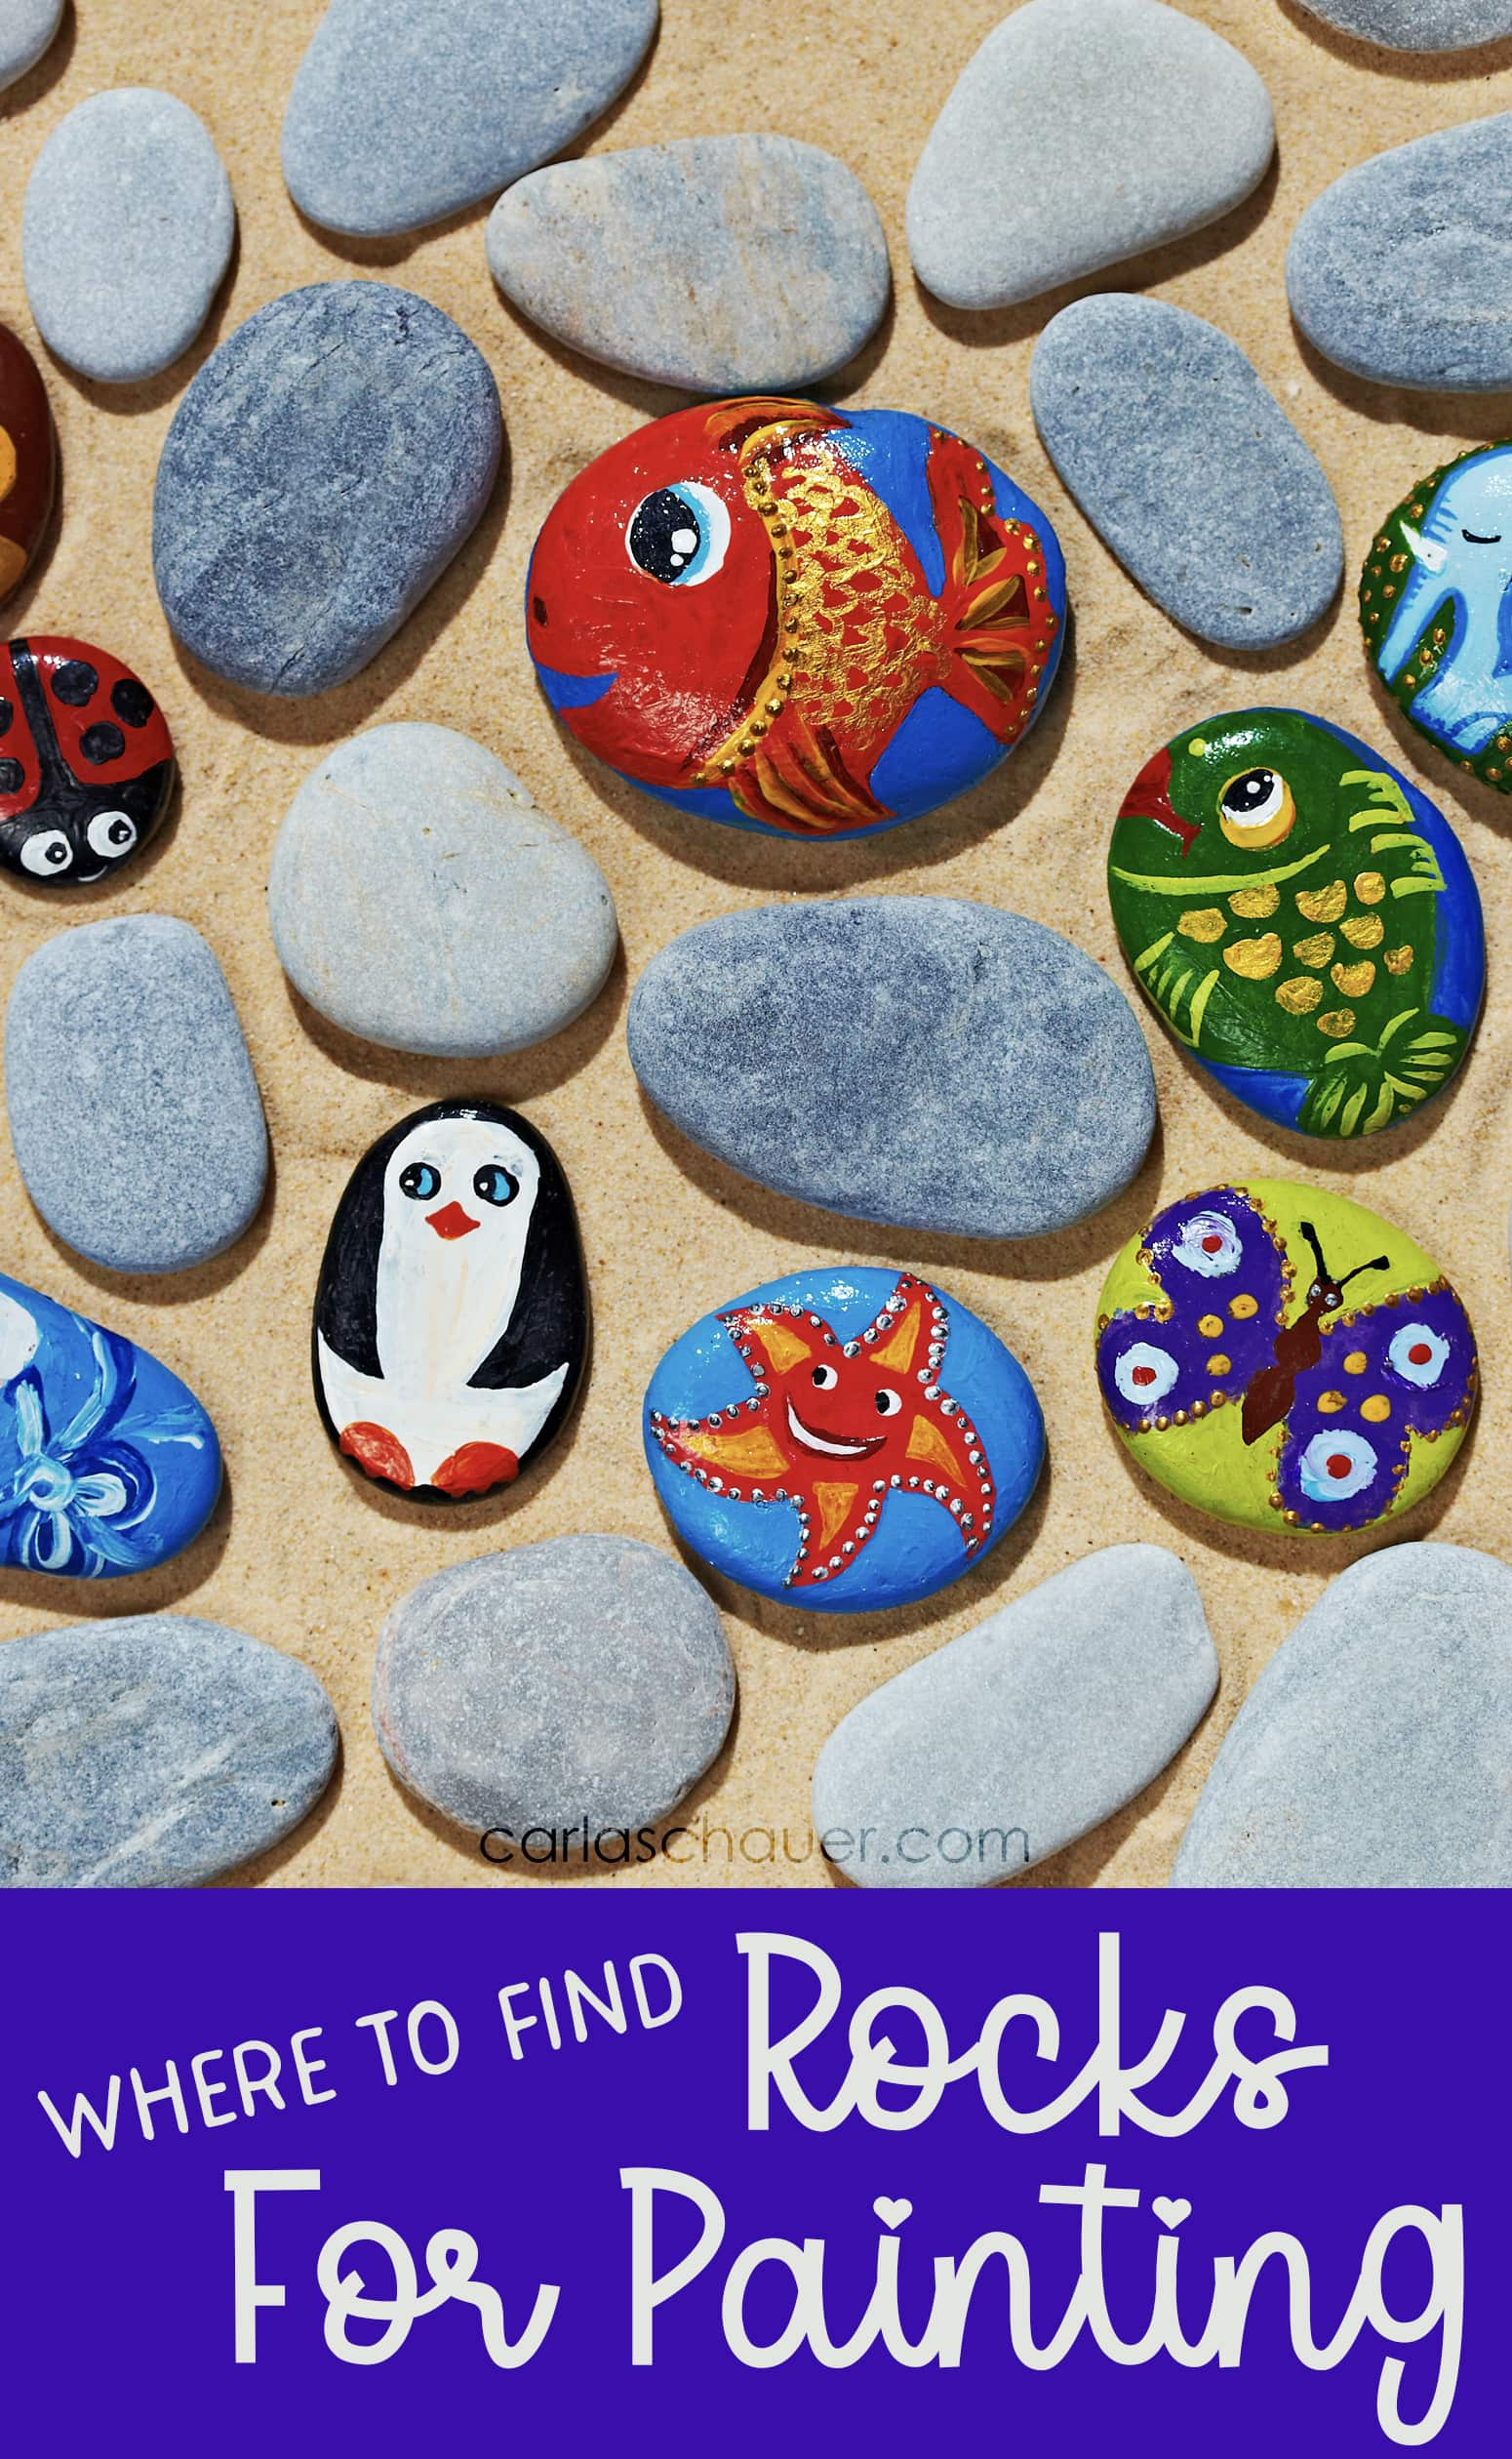 """A mix of animal painted and unpainted flat stones. White text on blue background at bottom reads """"Where to Find Rocks for Painting."""""""